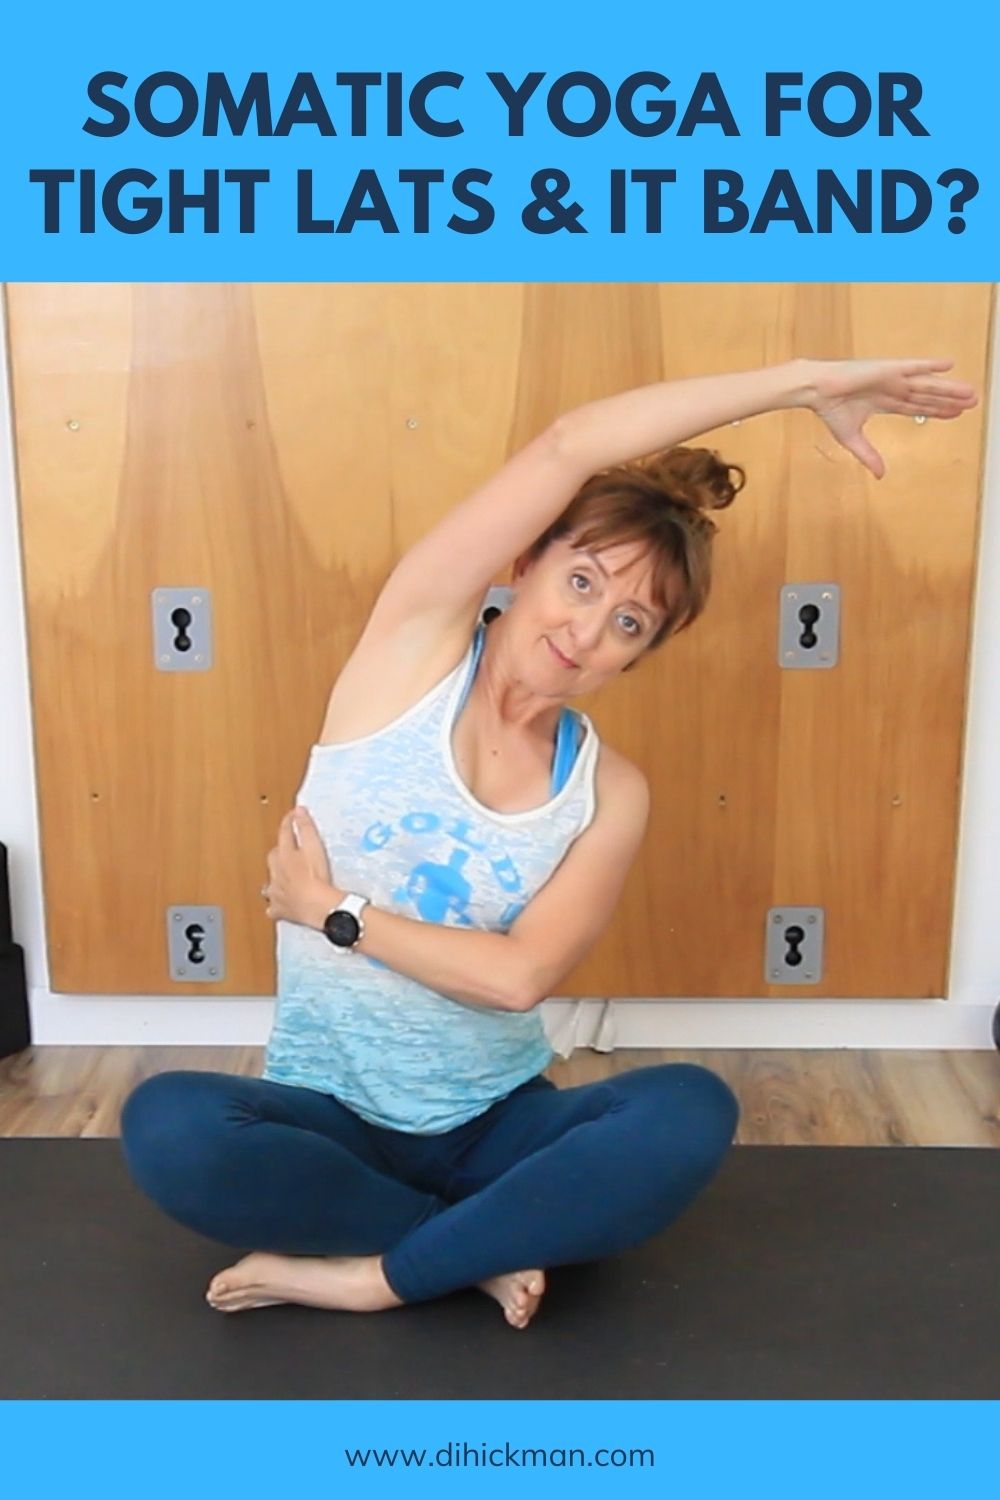 somatic yoga for tight lats & it band